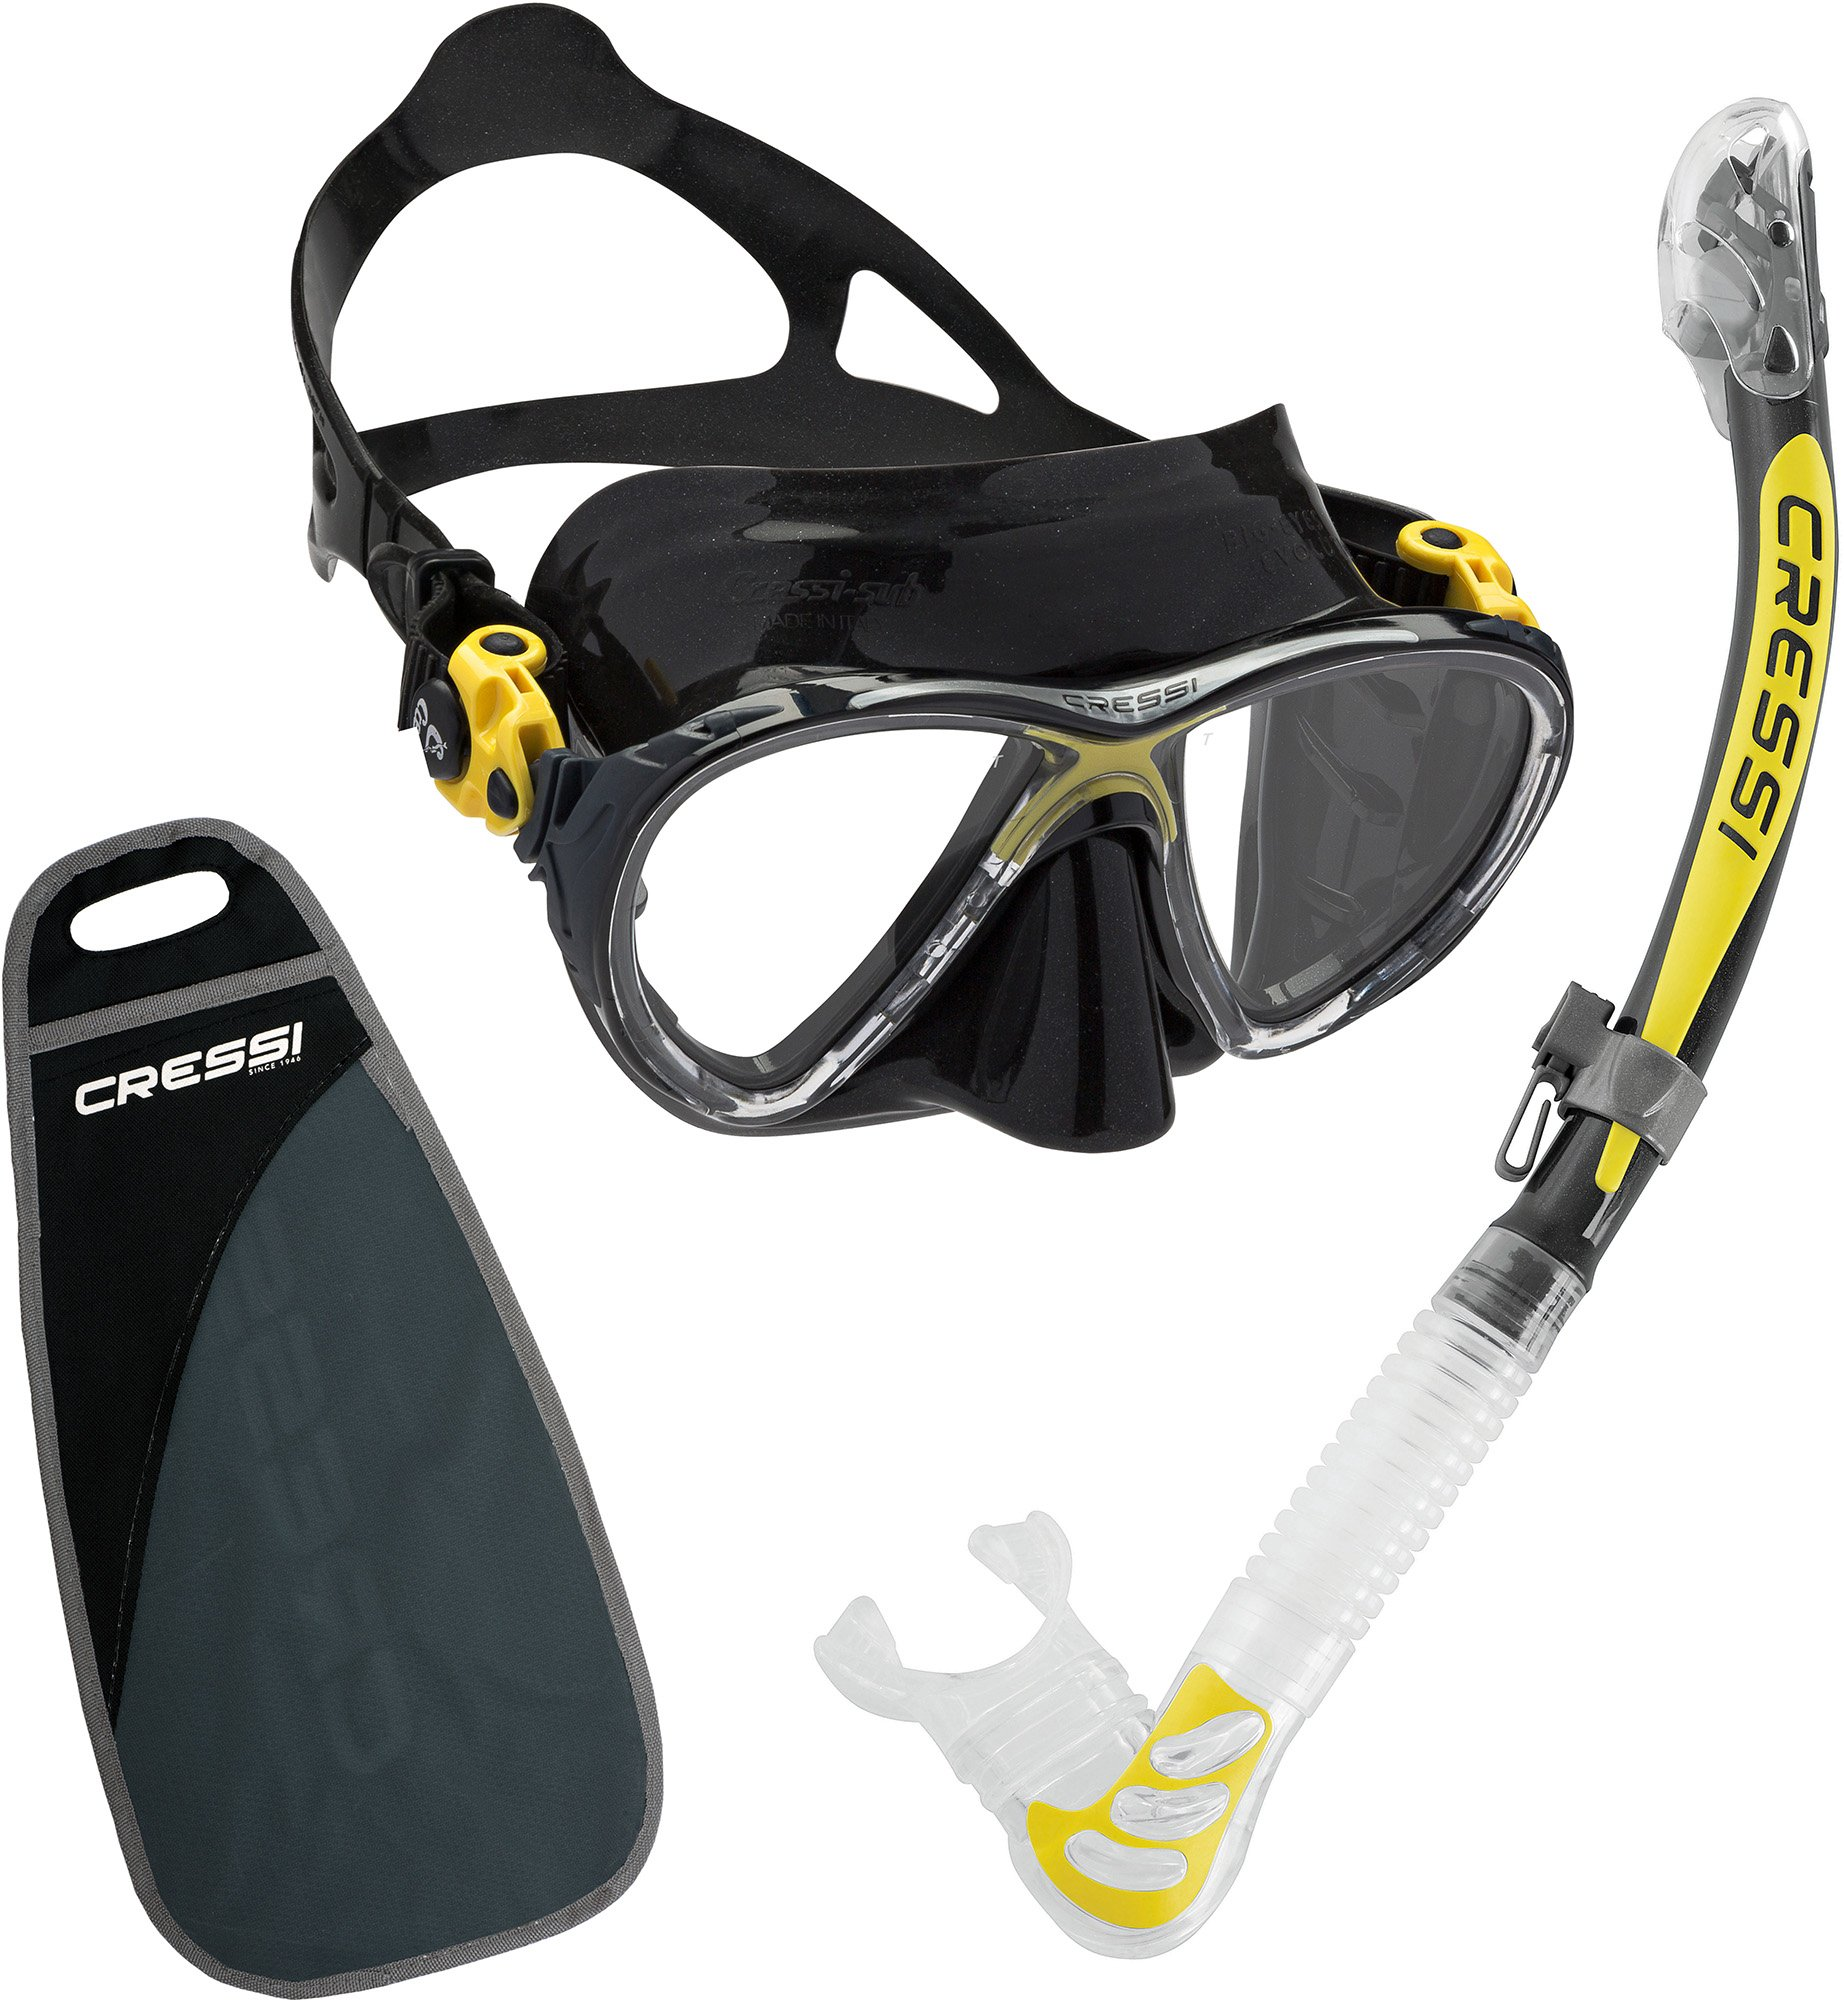 Cressi Big Eyes Evolution & Alpha Ultra Dry, Black/Yellow